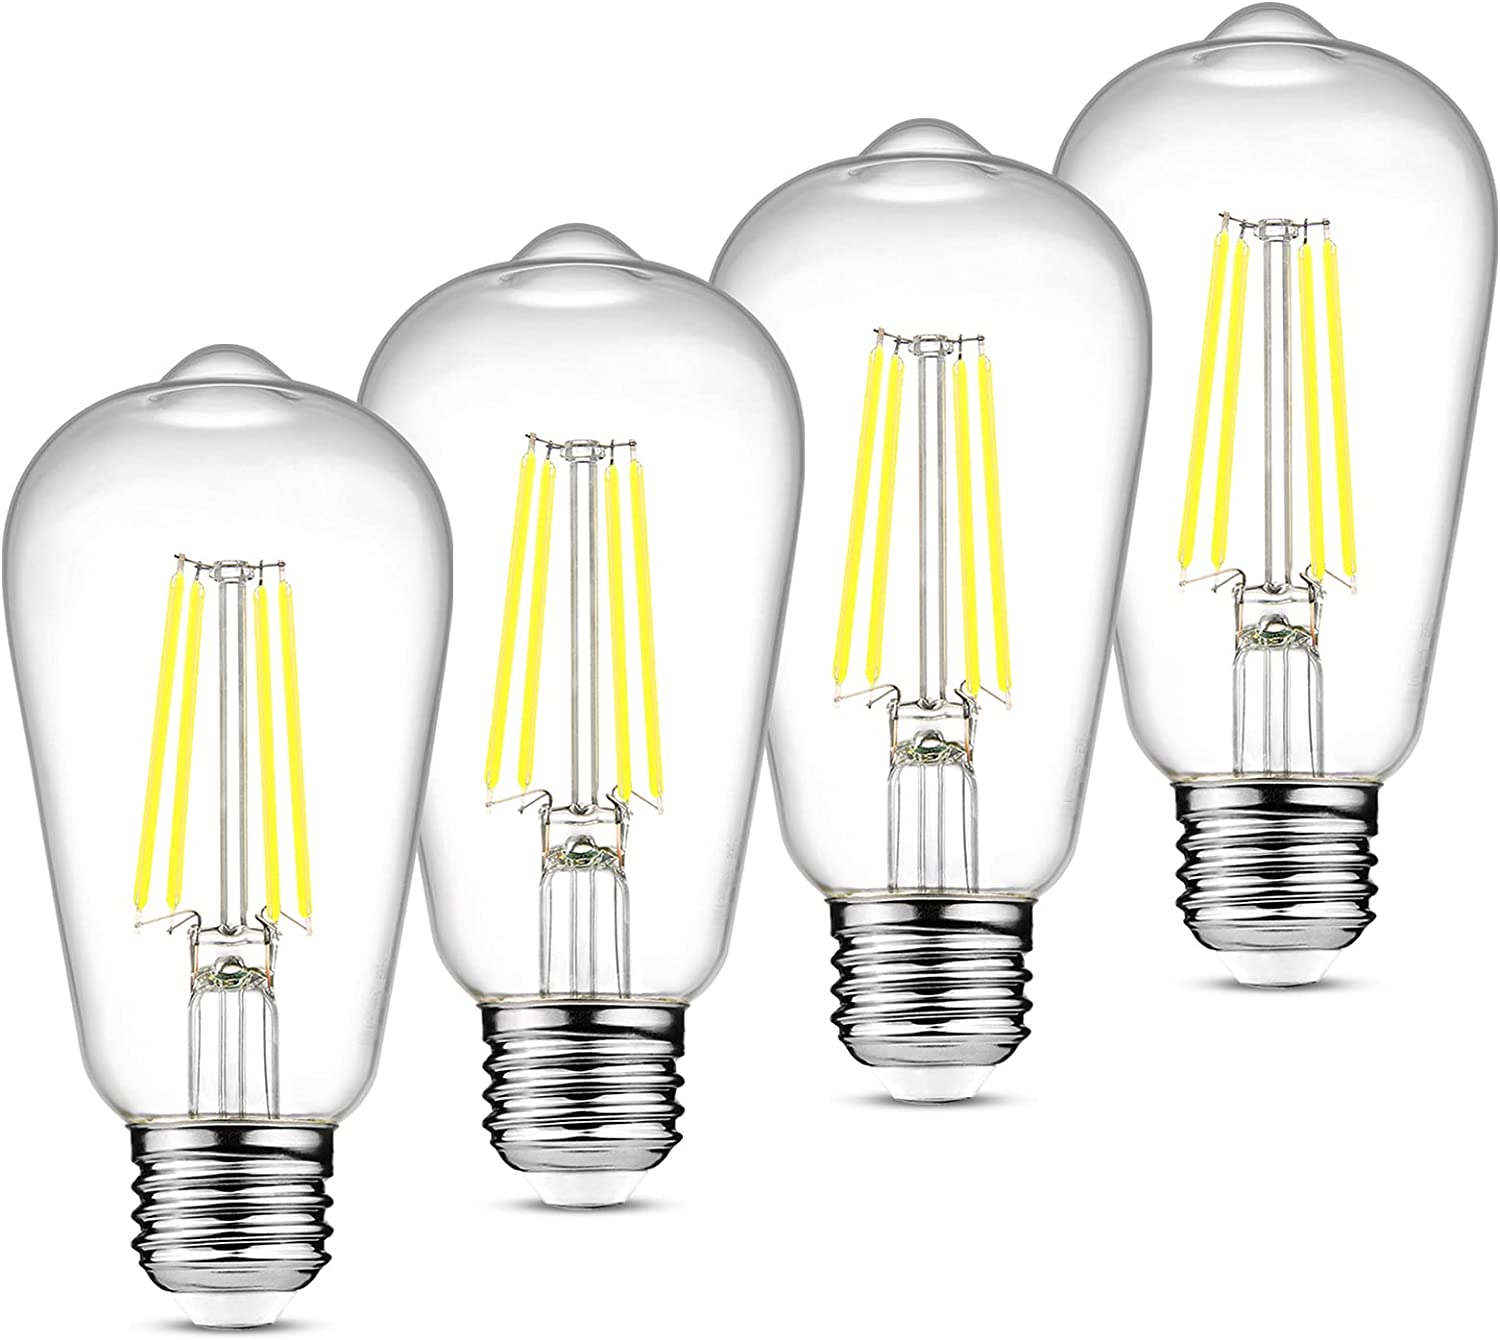 National uniform Easy-to-use free shipping Ascher Vintage LED Edison Bulbs Equivalent 60W 6W Non-Dimmabl